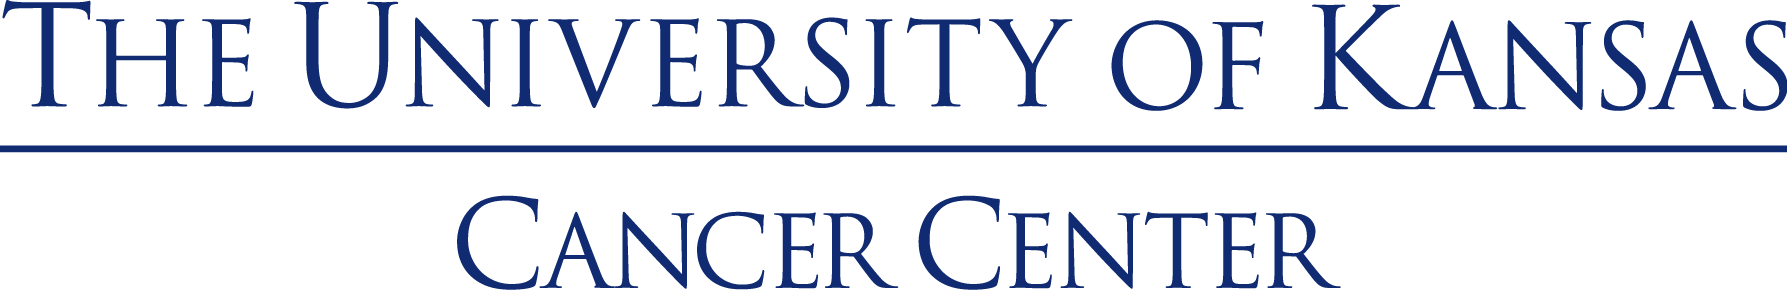 university-kansas-cancer-center